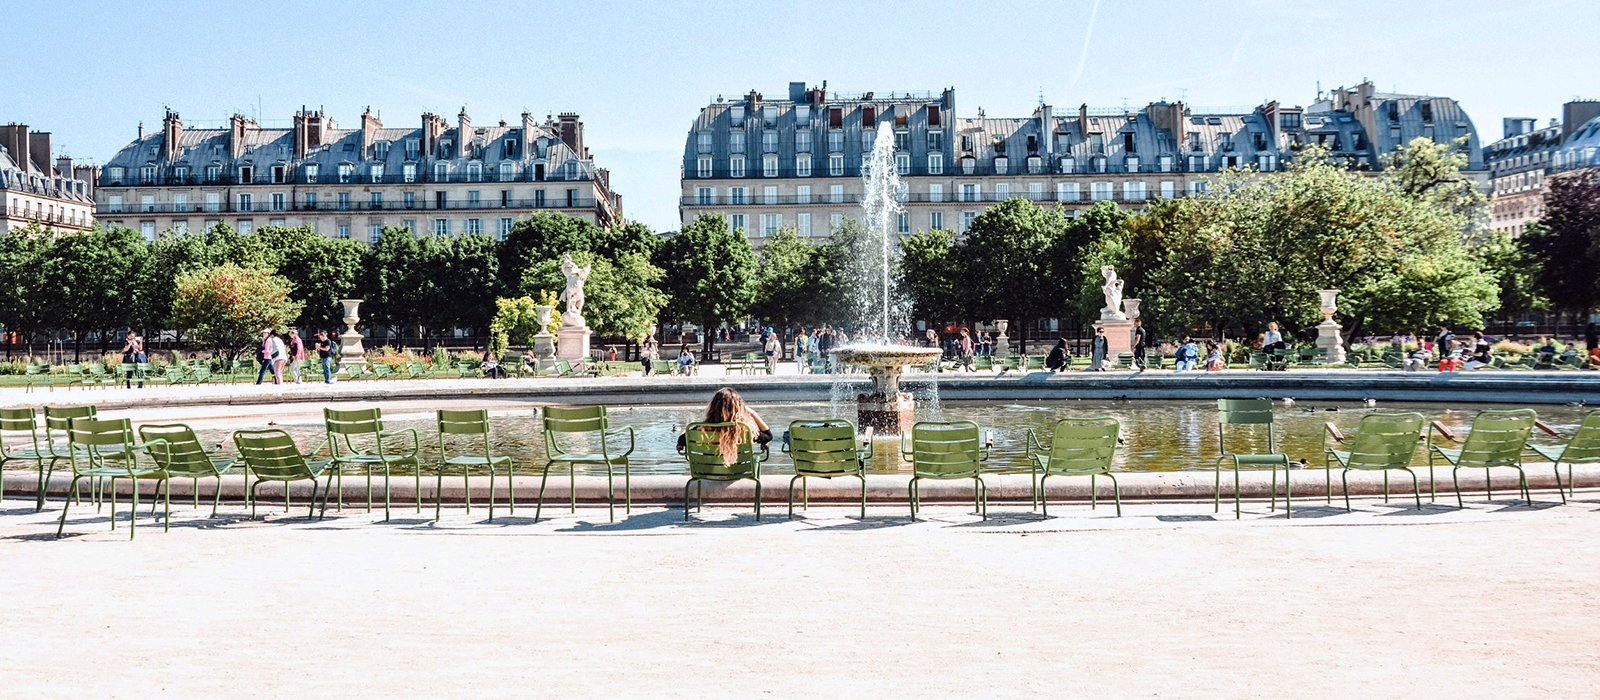 This image shows the Tuileries Garden's foutain